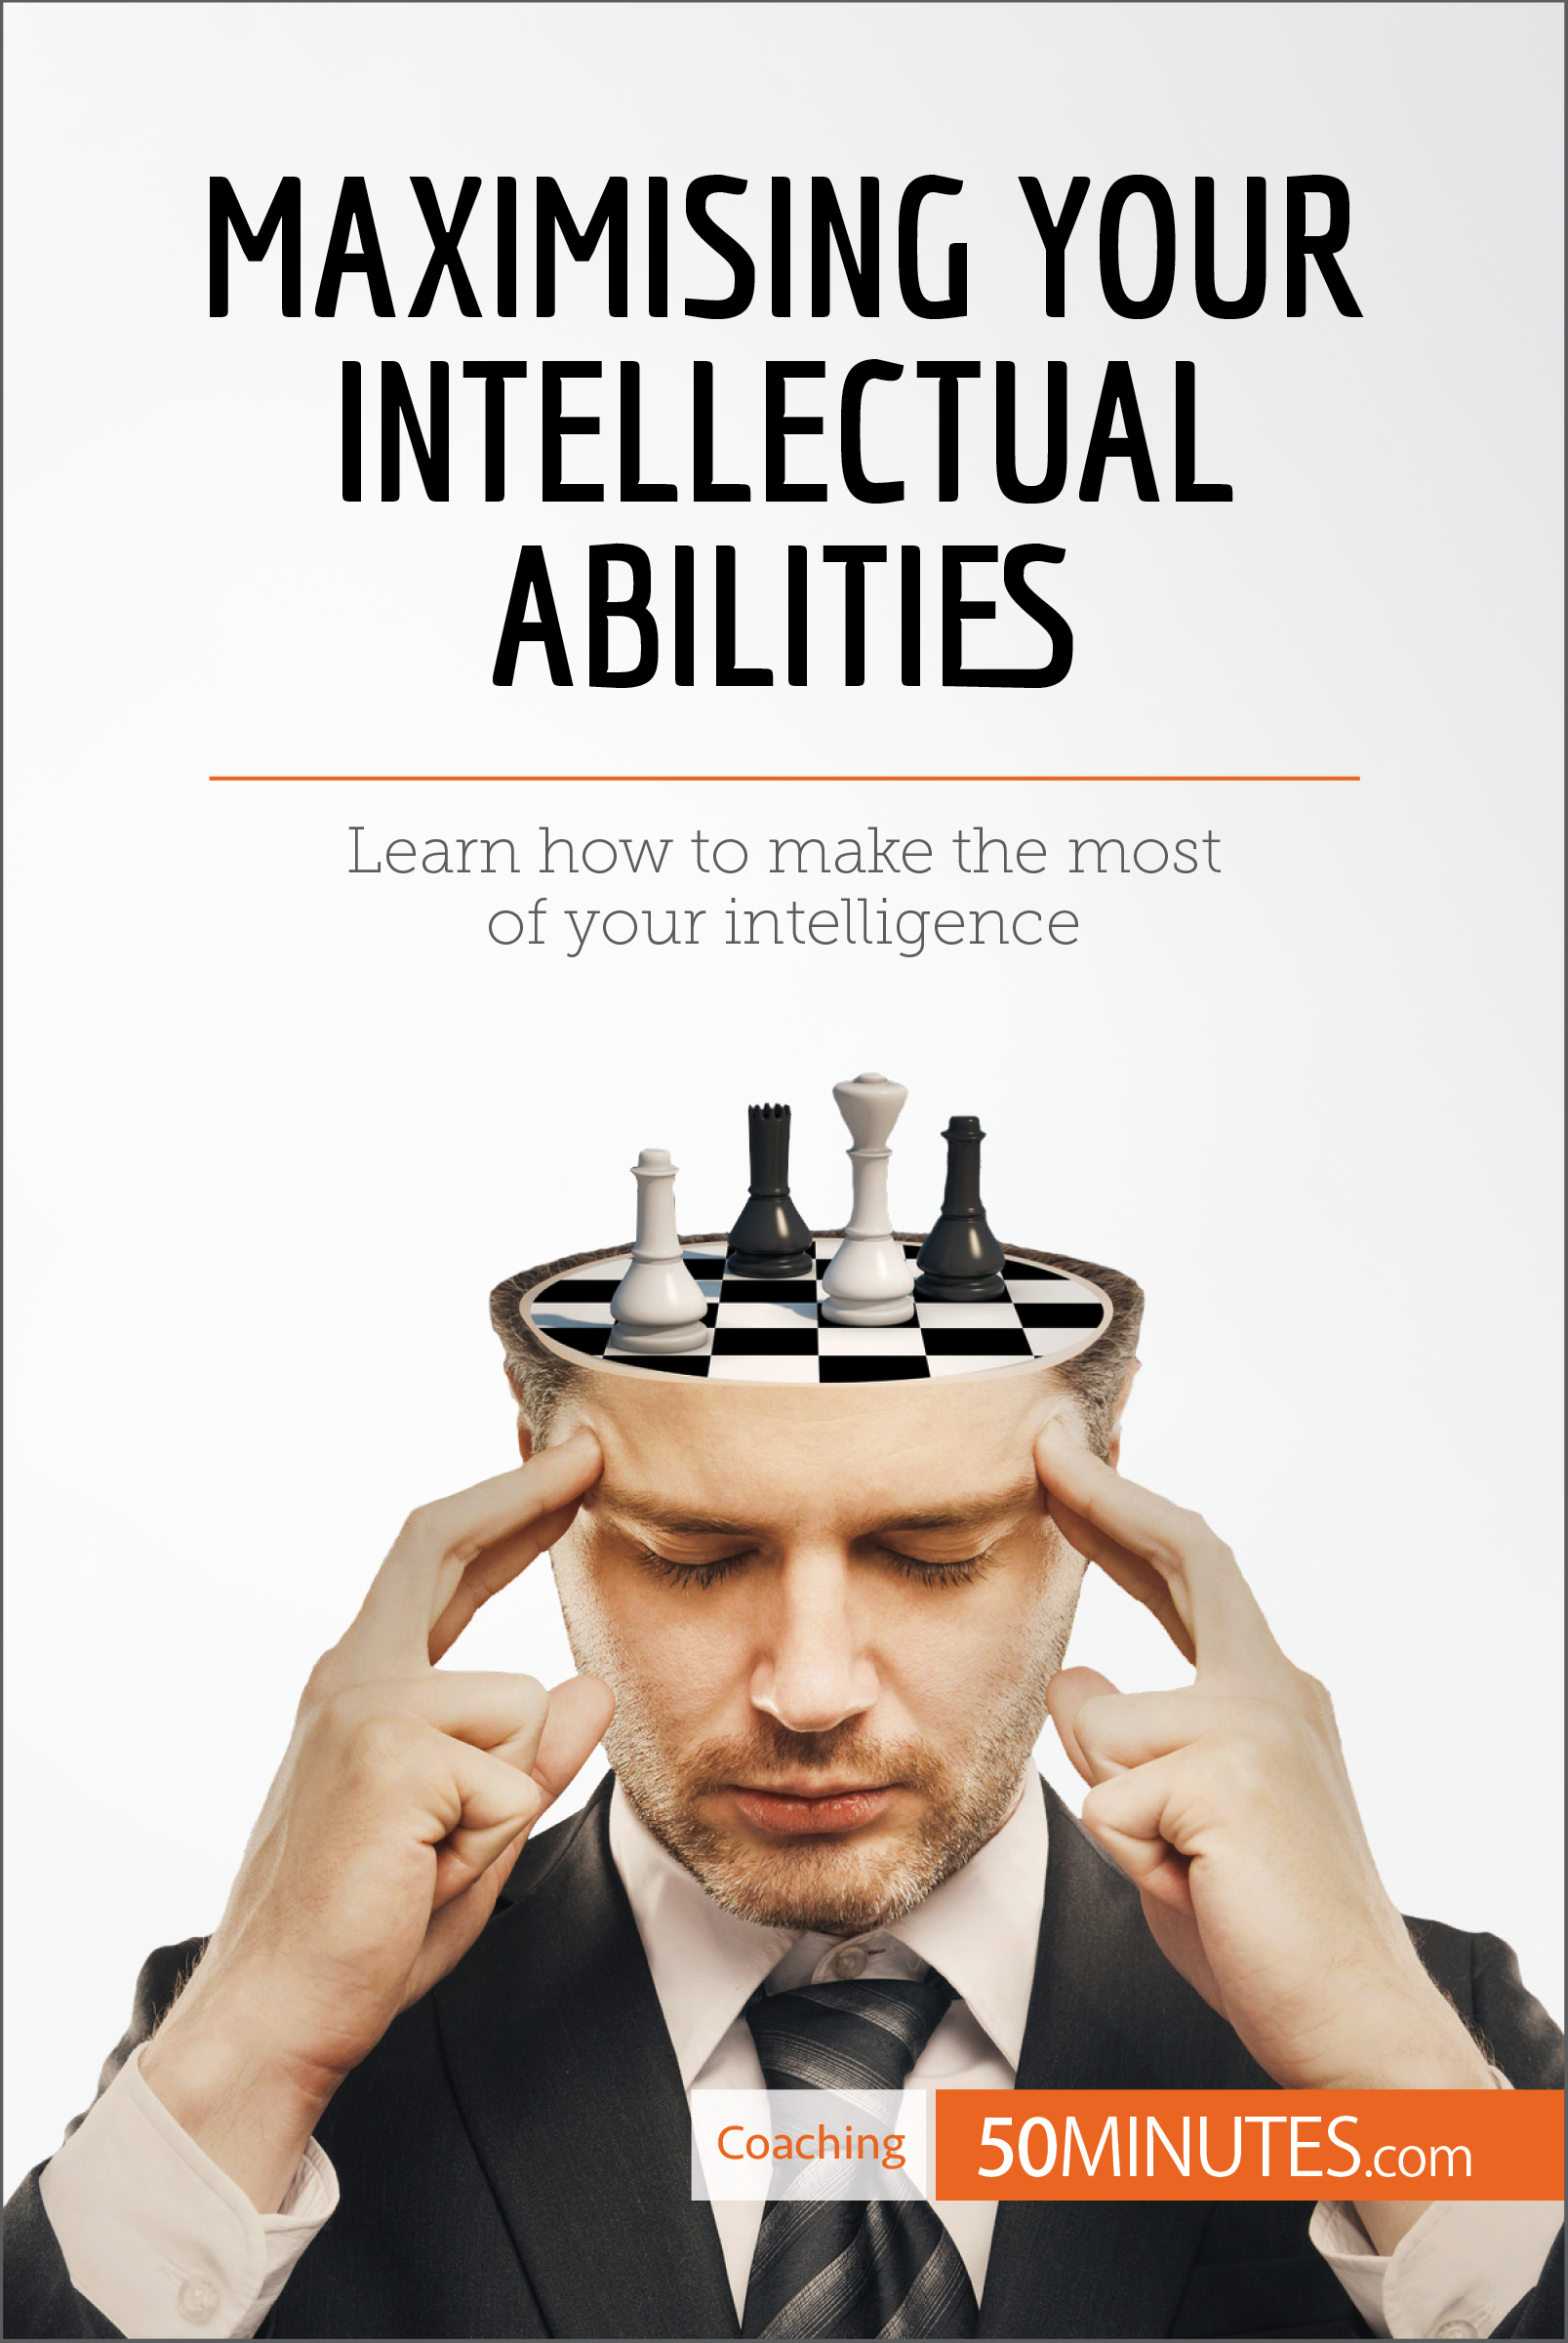 Maximising Your Intellectual Abilities